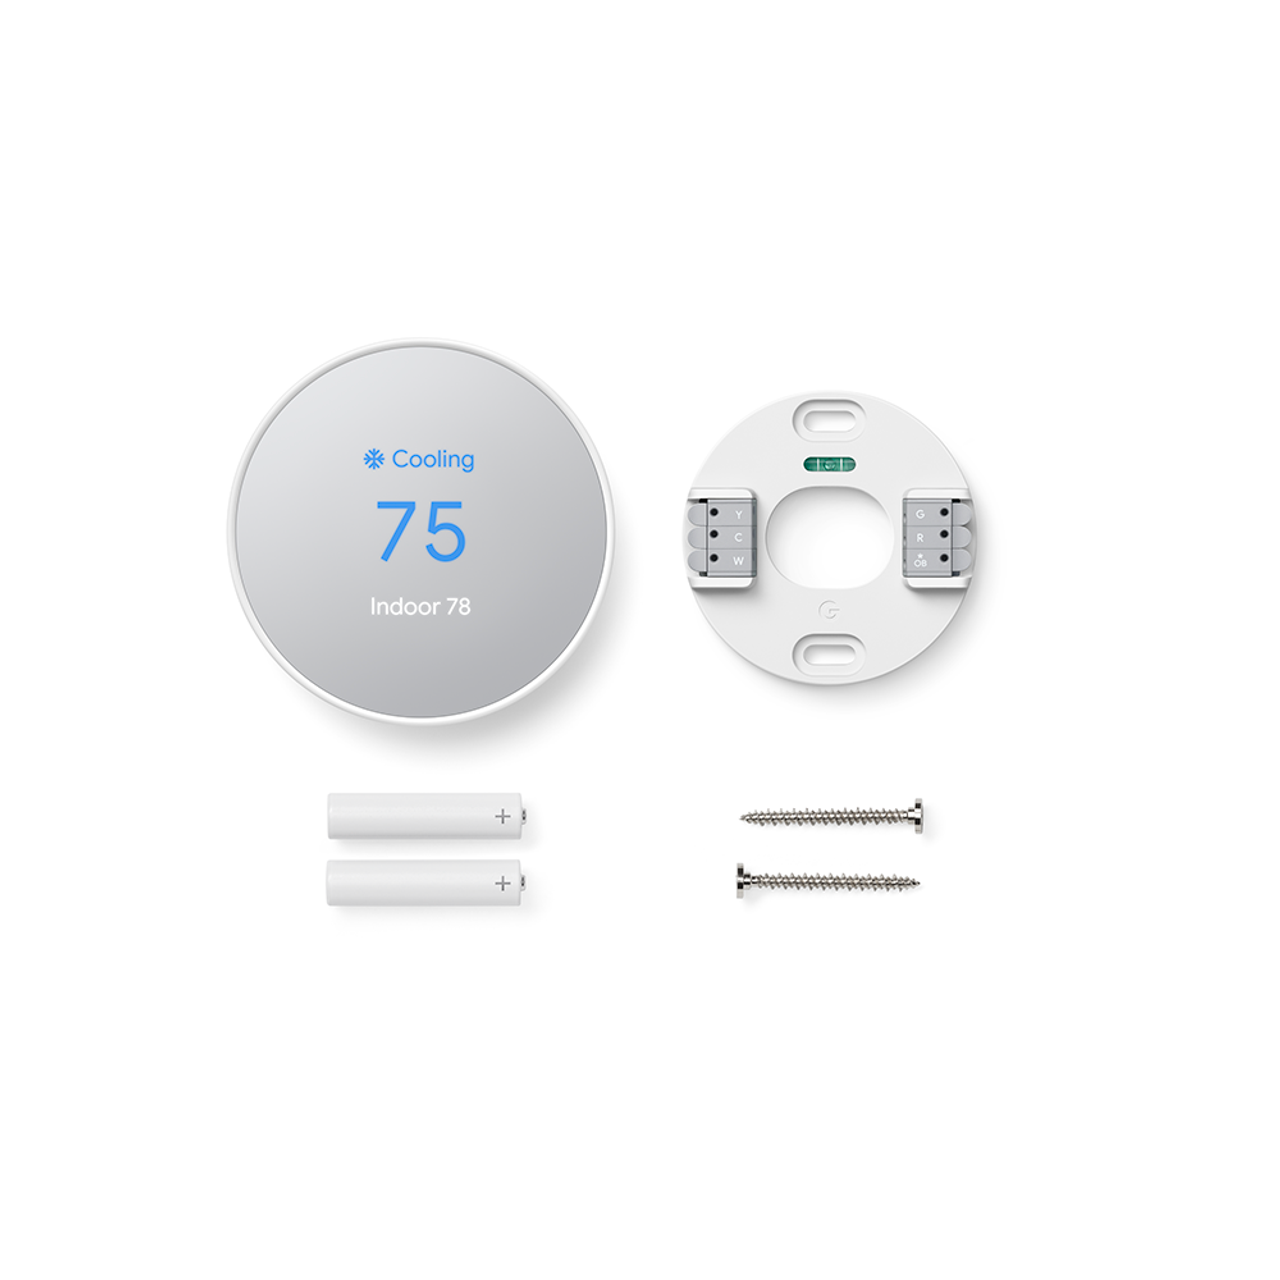 Nest thermostat with backplate and screws